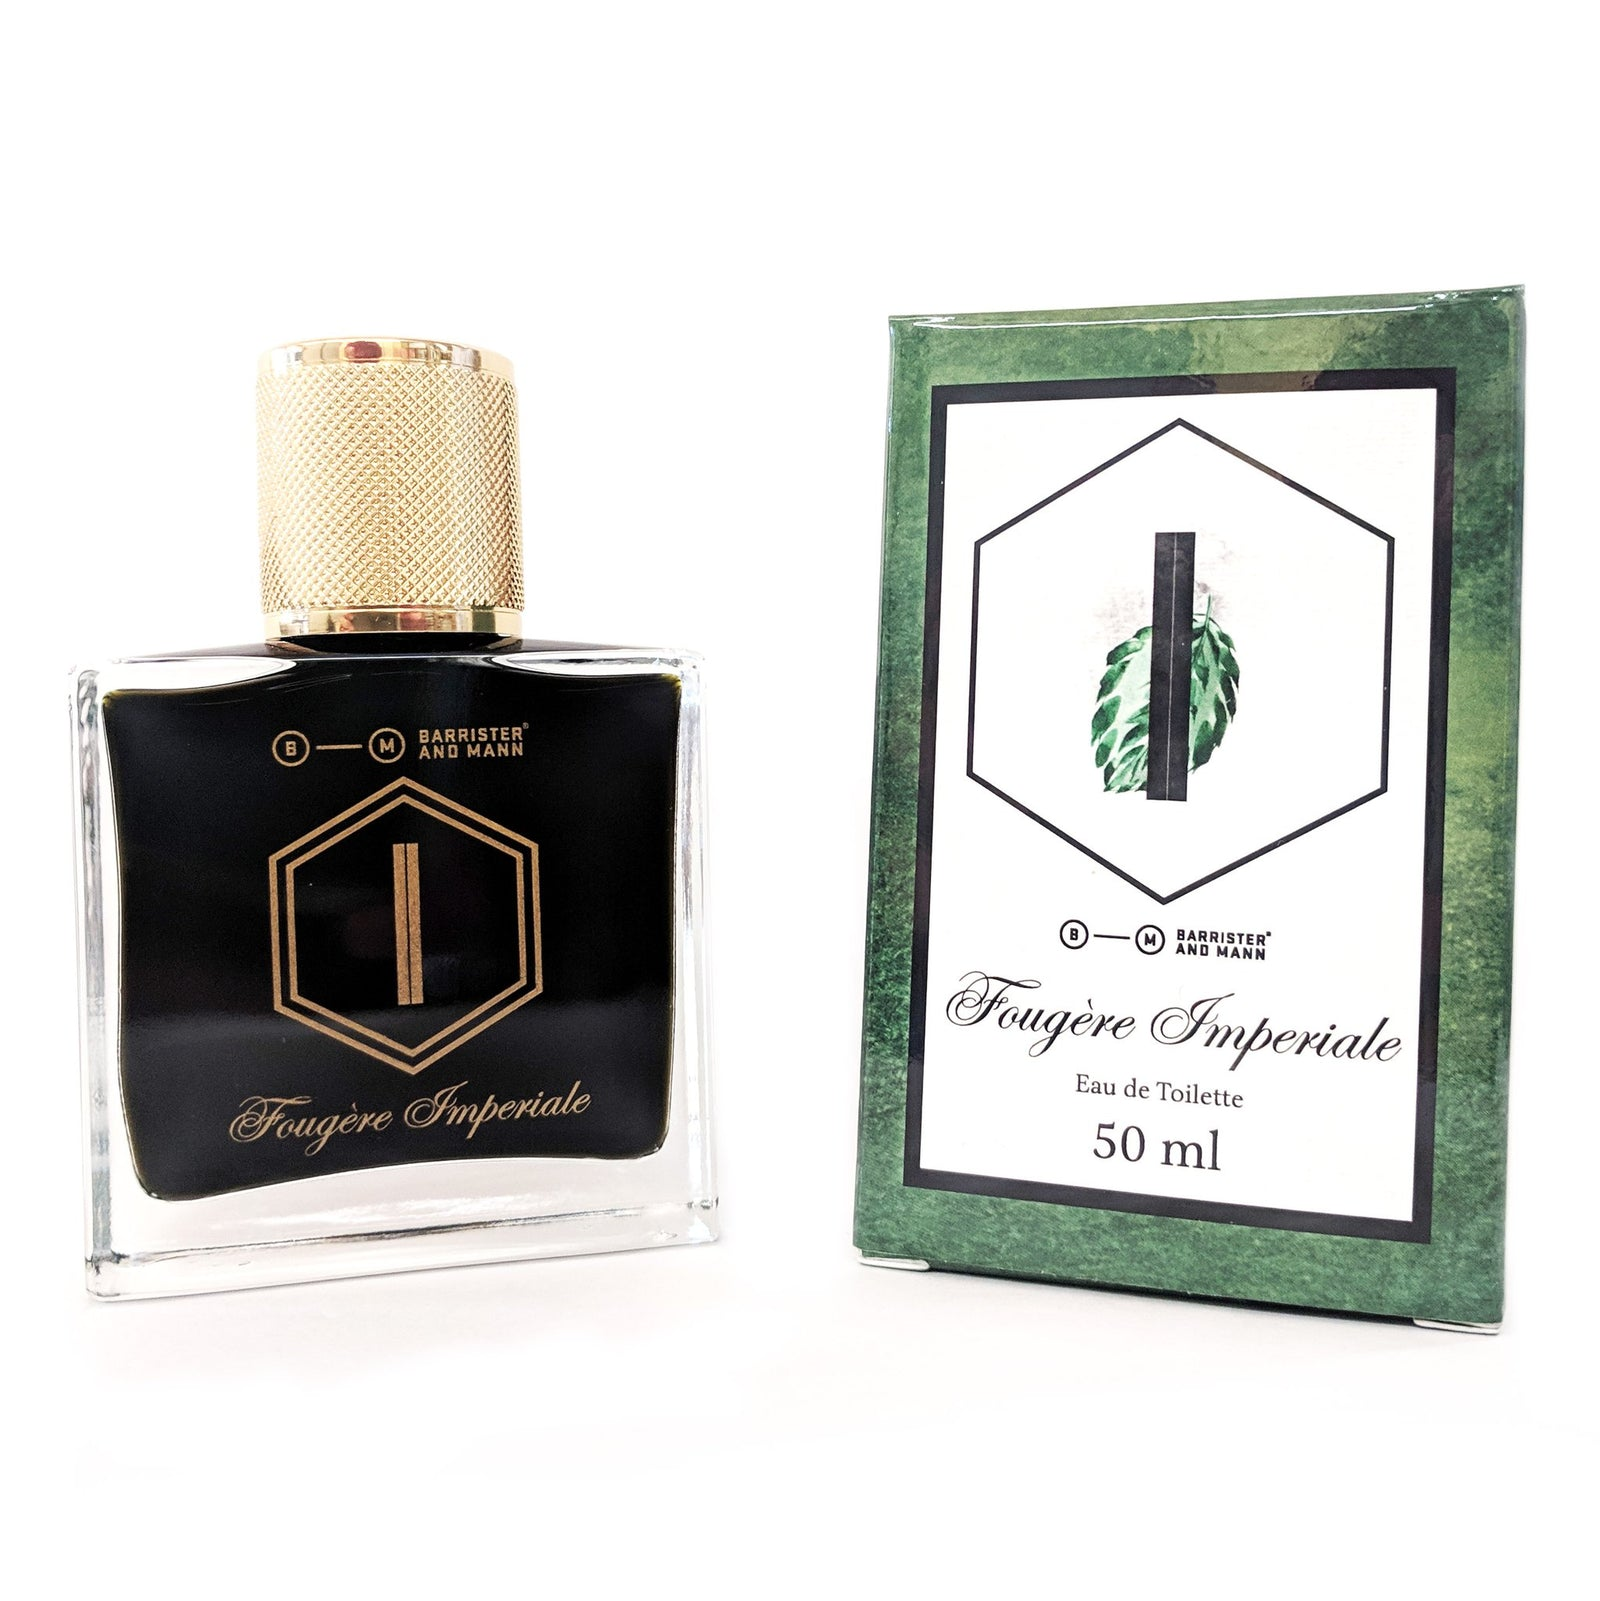 Barrister and Mann - Fougère Imperiale Eau de Toilette (Limited Edition)